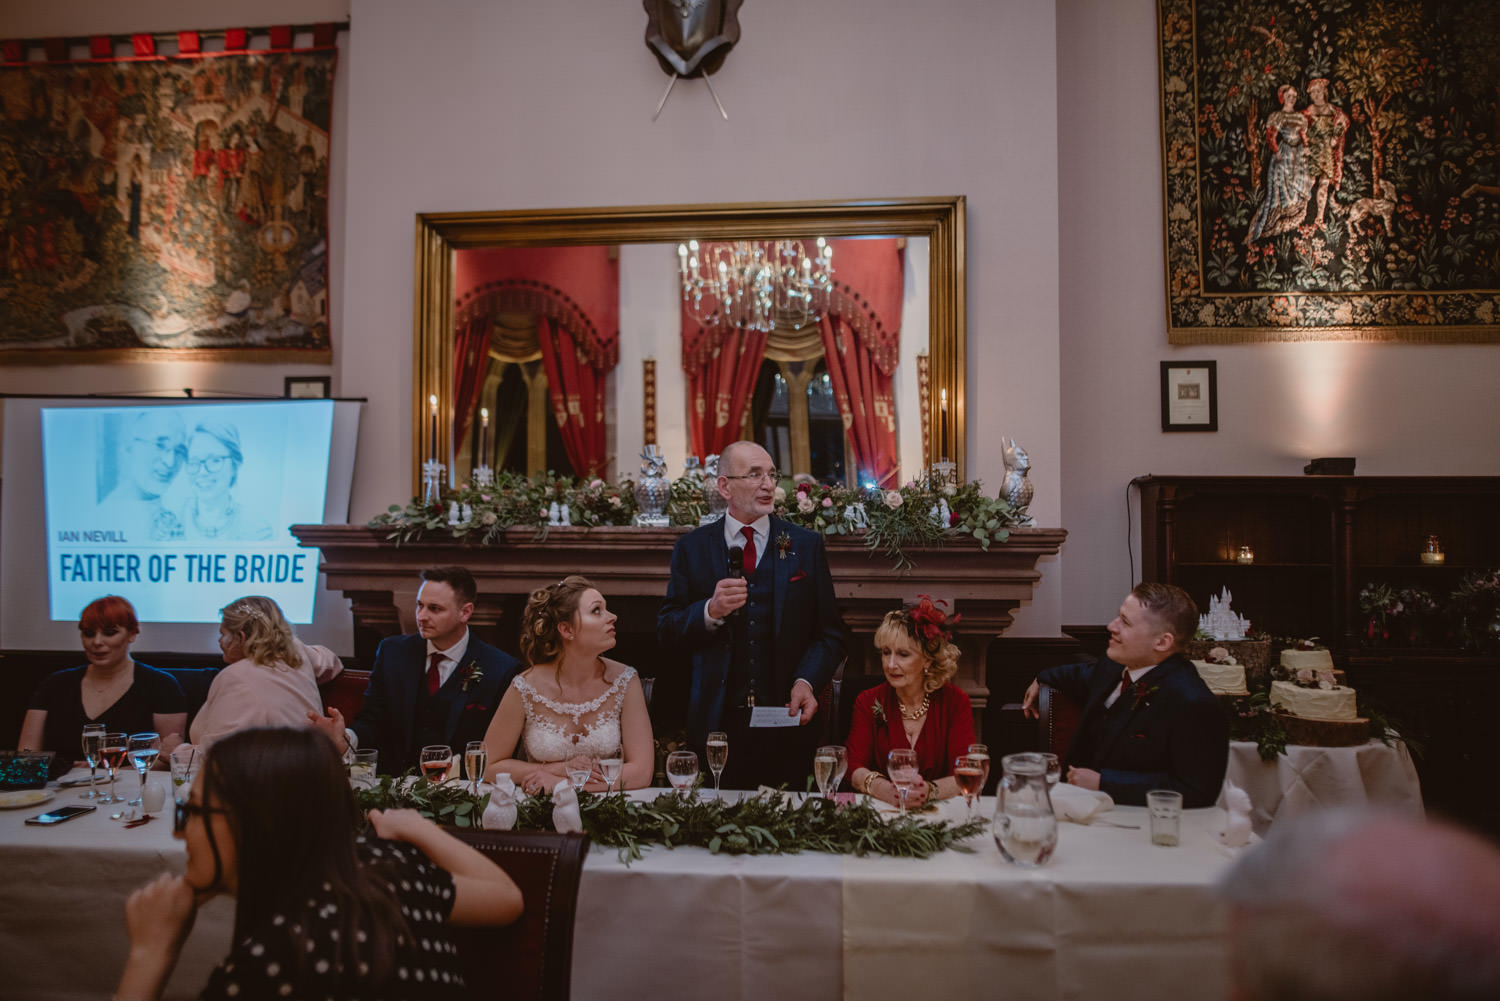 Father of the bride speech during the reception at Peckforton Castle